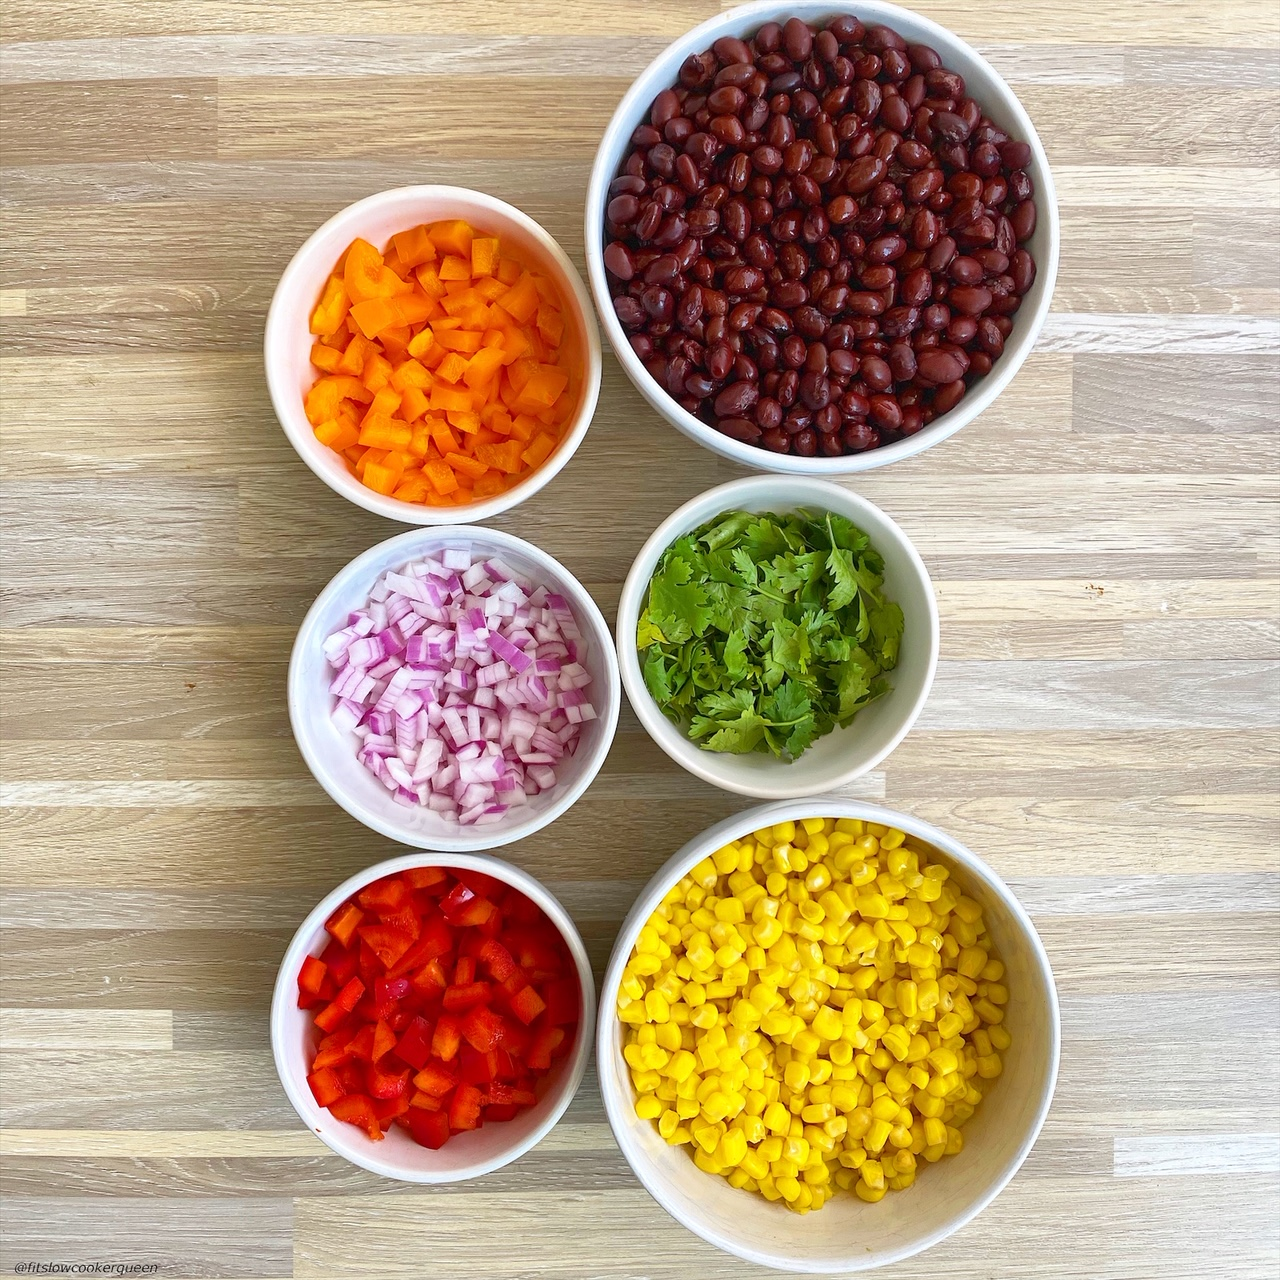 in separate bowls: black beans, corn, diced orange bell pepper, diced red bell pepper, red onion, fresh cilantro